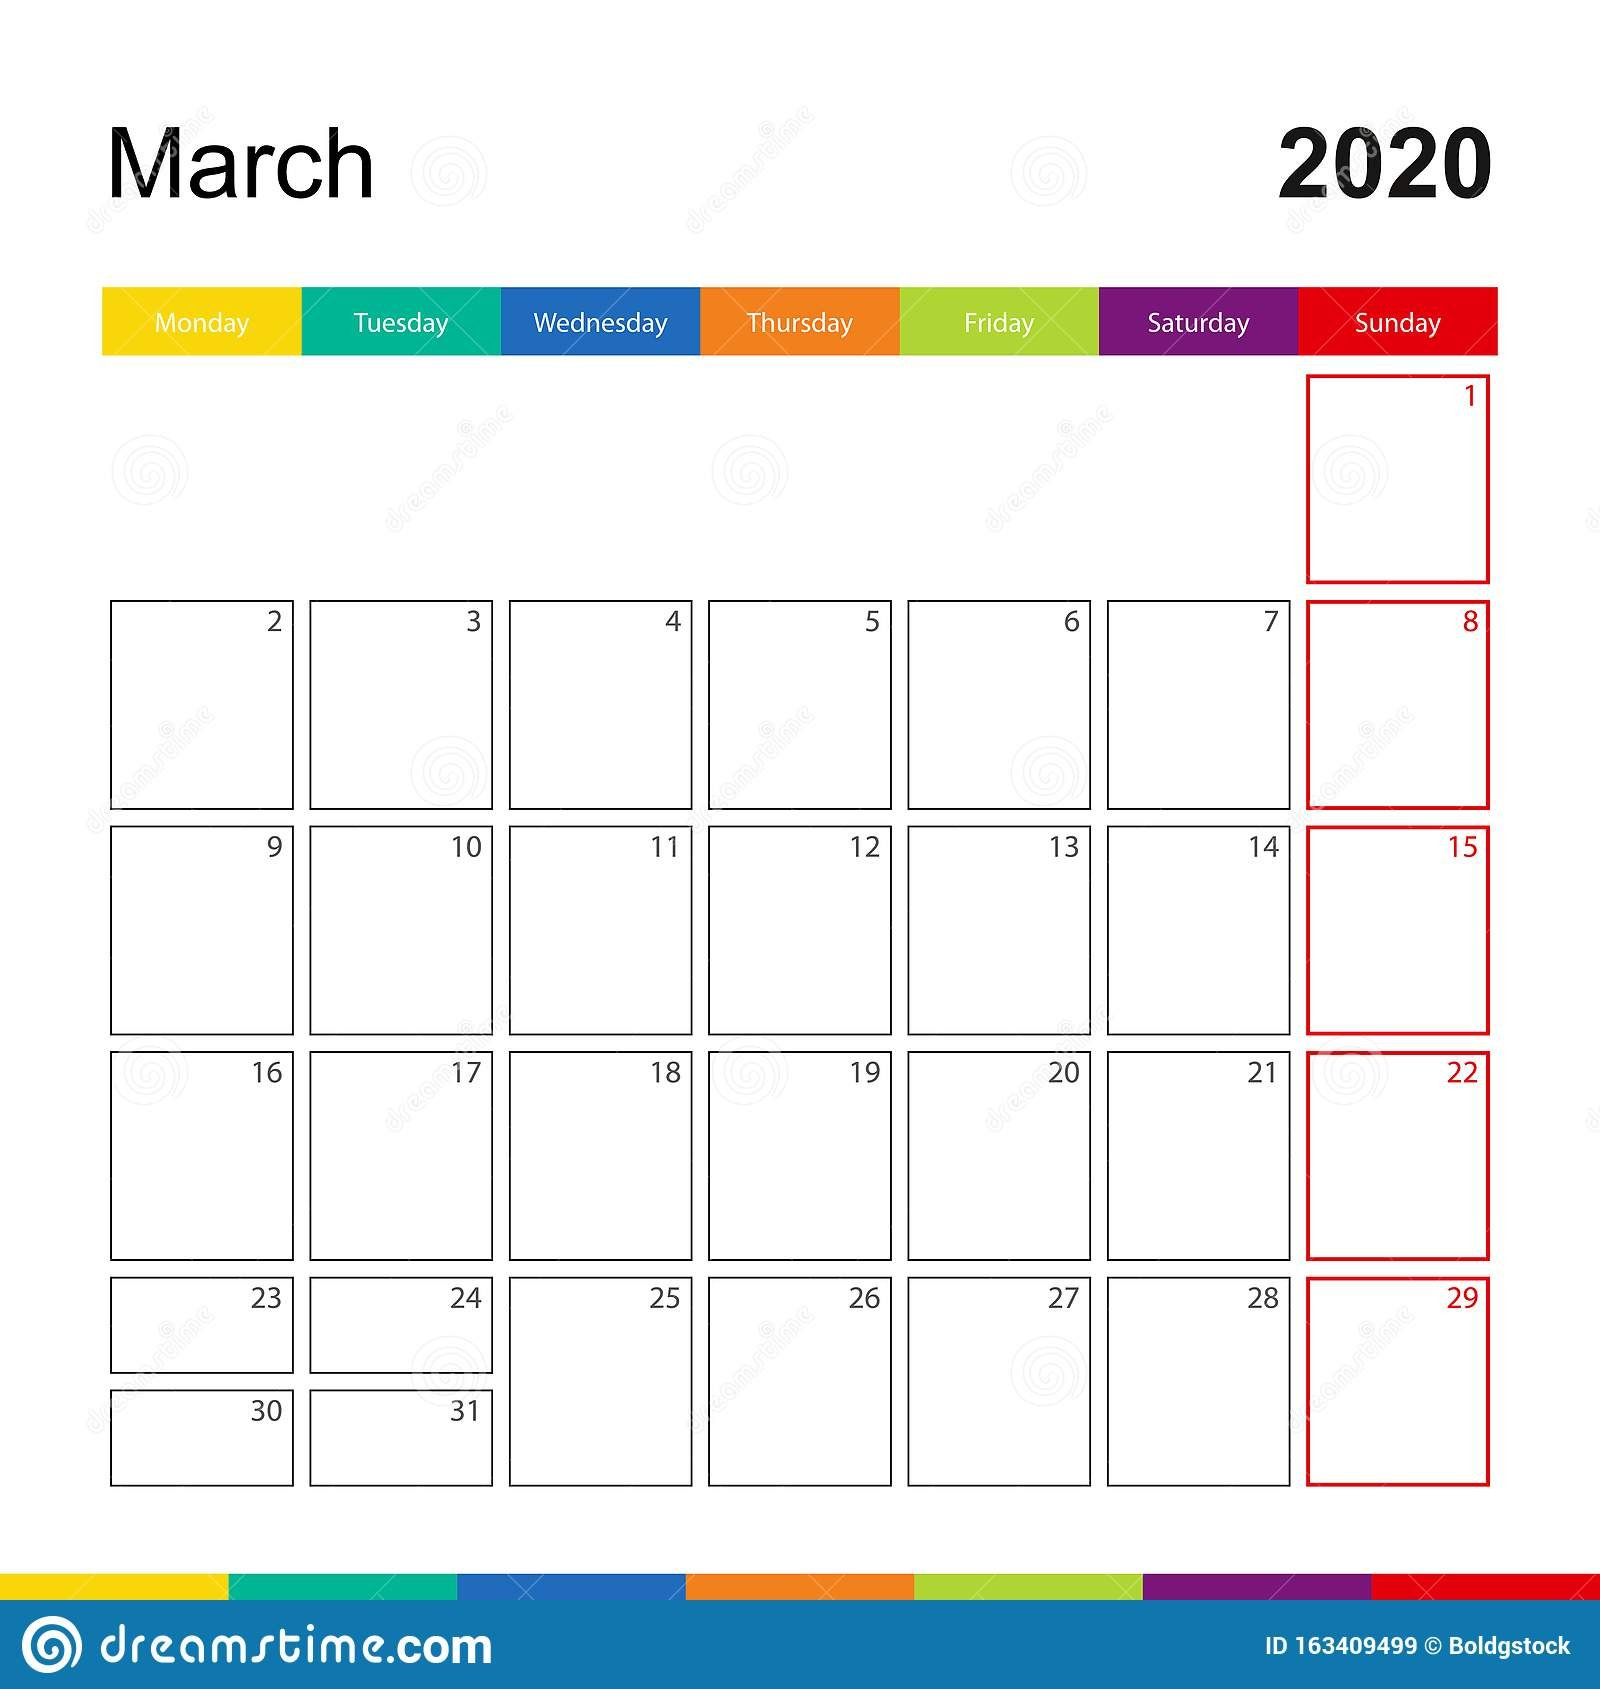 March 2020 Colorful Wall Calendar, Week Starts On Monday Printable Calendar For The Week Of March 2 Thru March 6